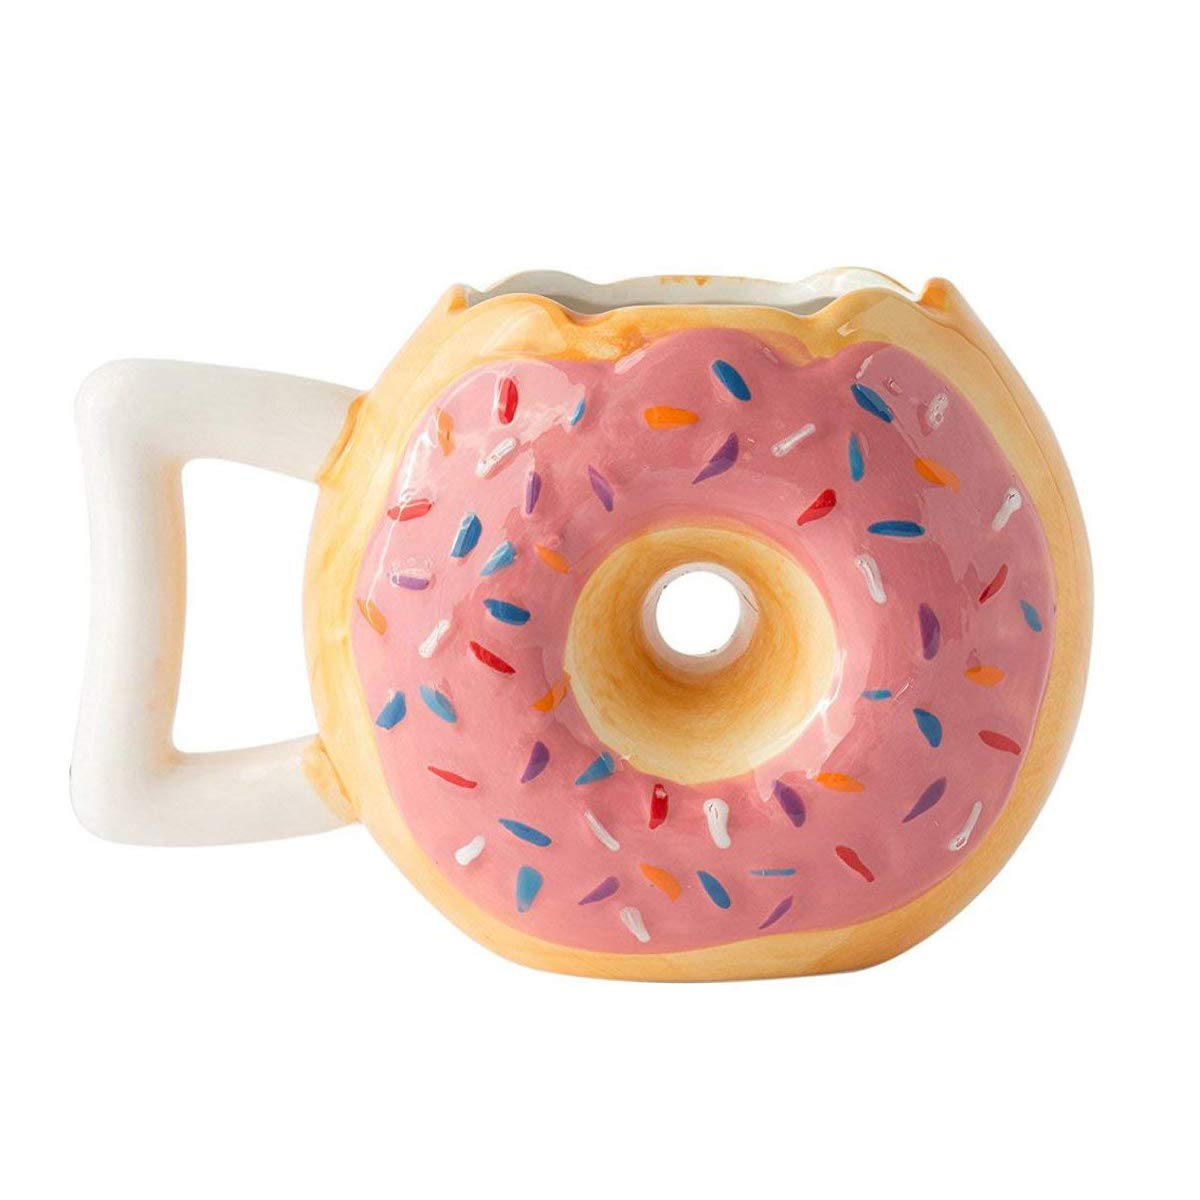 Ceramic Donut Mug - Delicious Pink Glaze Doughnut with Sprinkles - FunnyMMM. Donuts! Quote - Best Cup For Coffee, Tea, Hot Chocolate and More - Large 14 oz Comfify CER-0616-04-PI